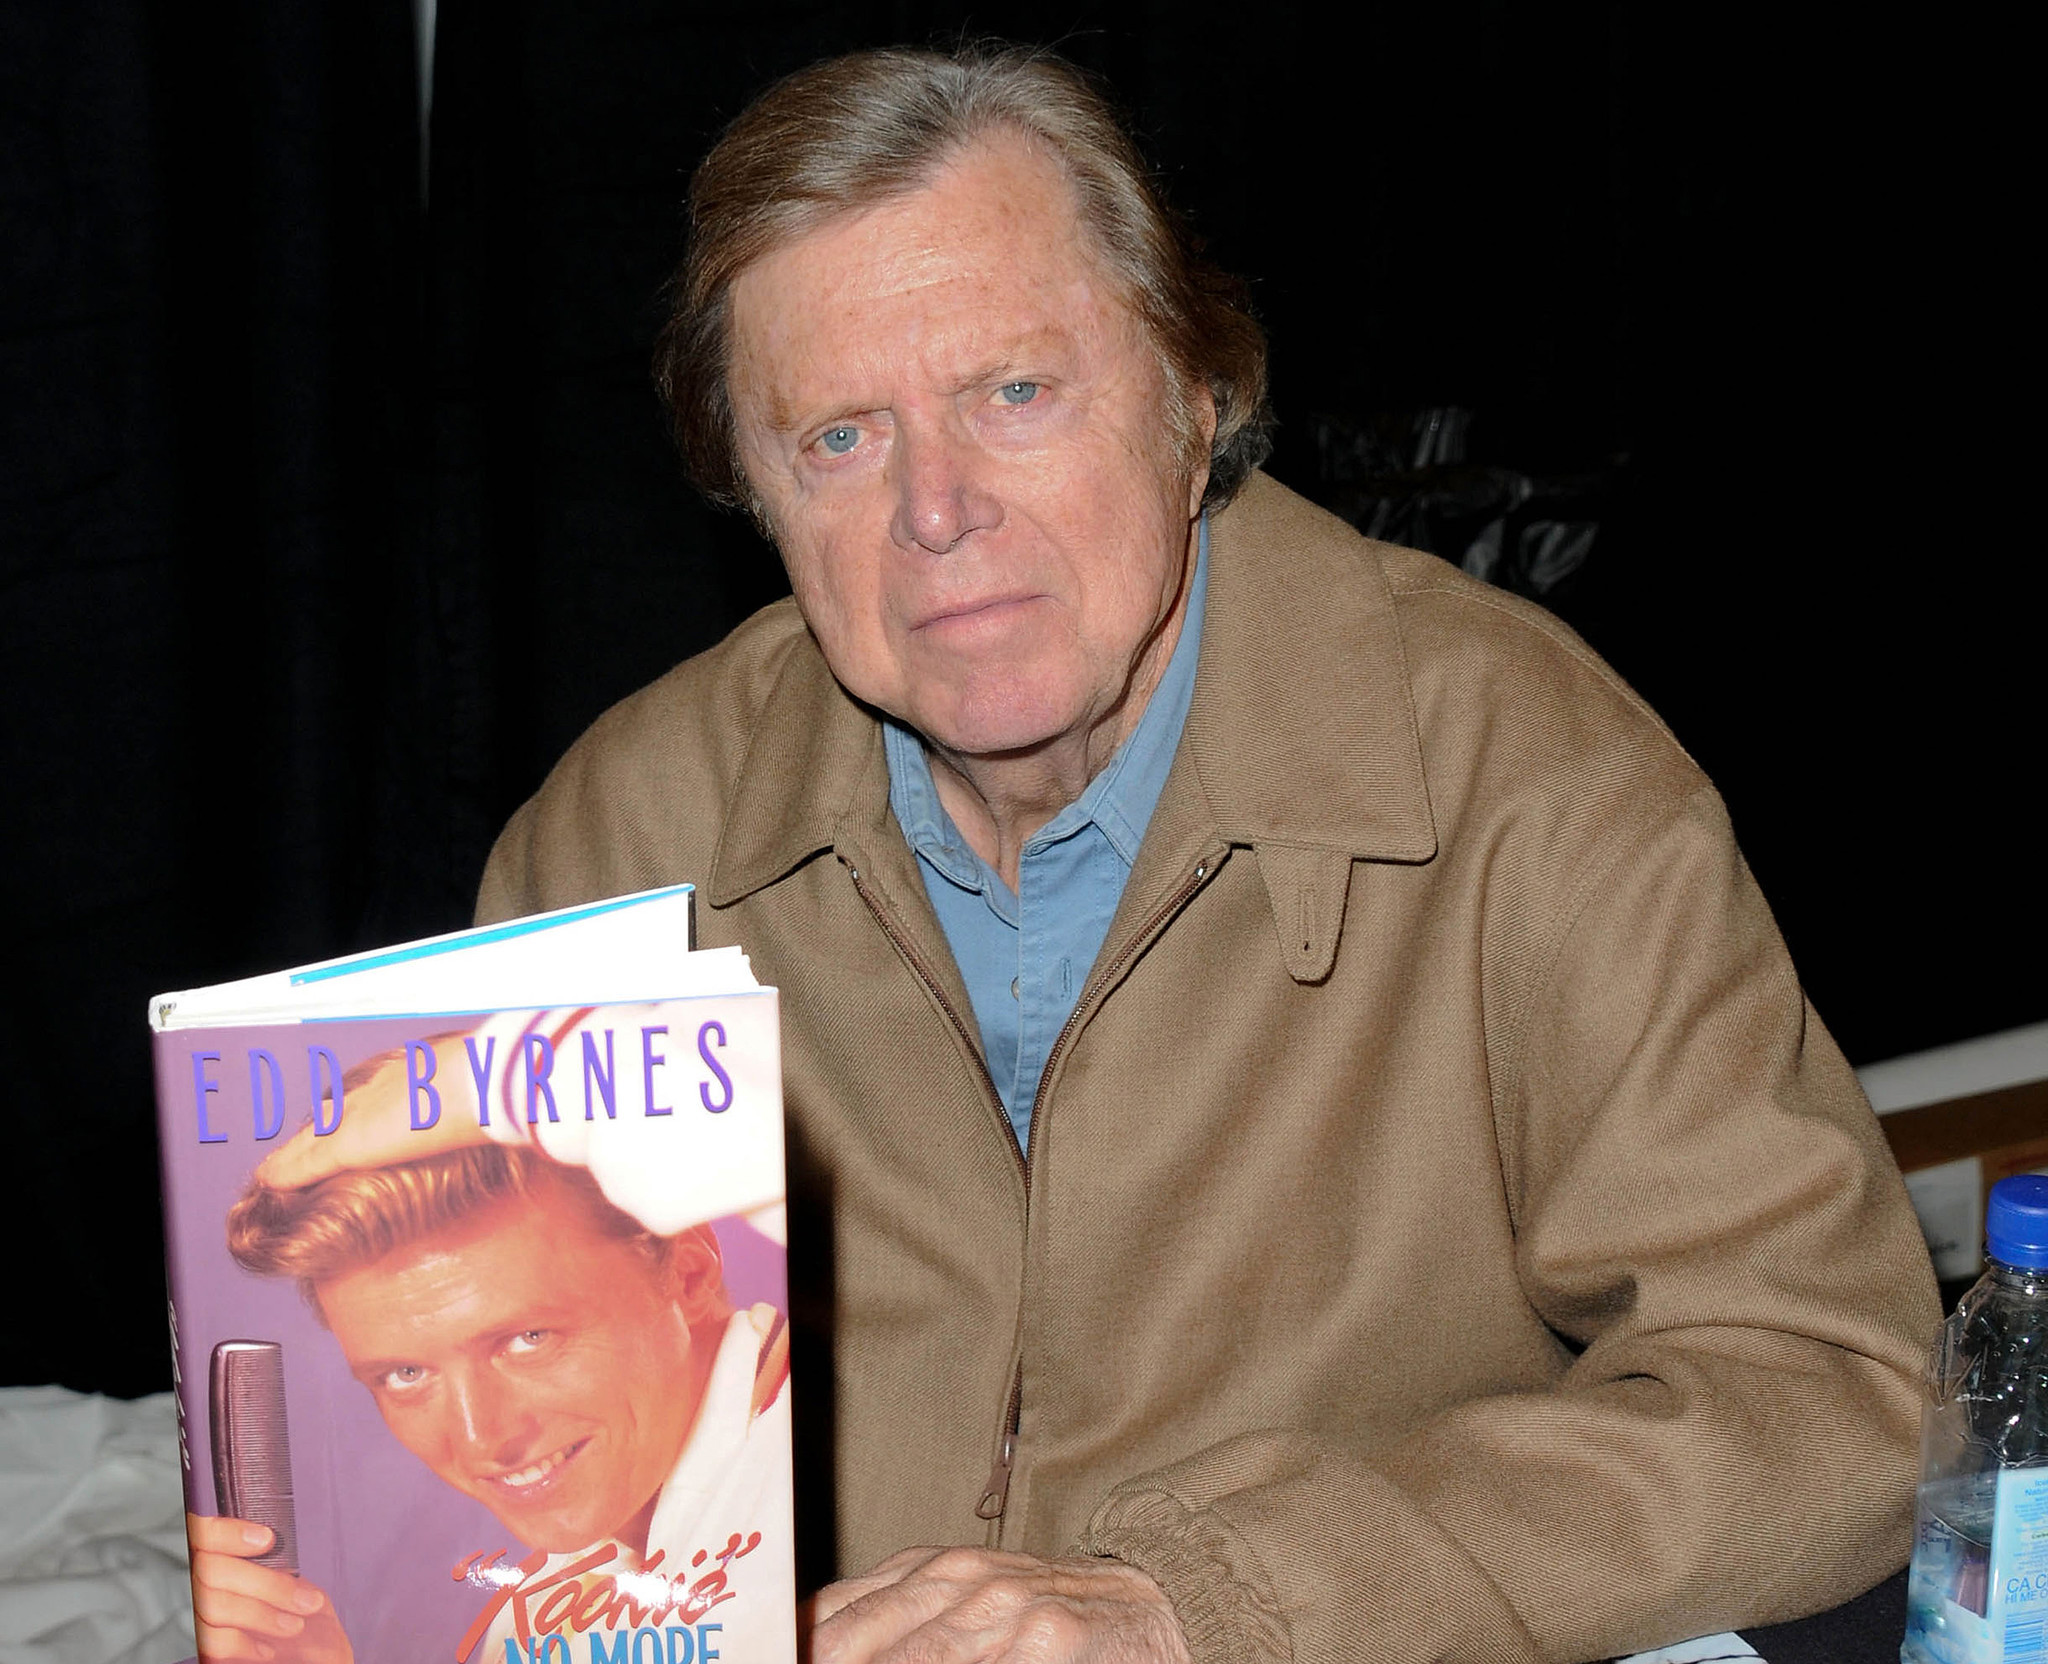 Edd Byrnes, 'Vince Fontaine' in 'Grease,' dies at age 87